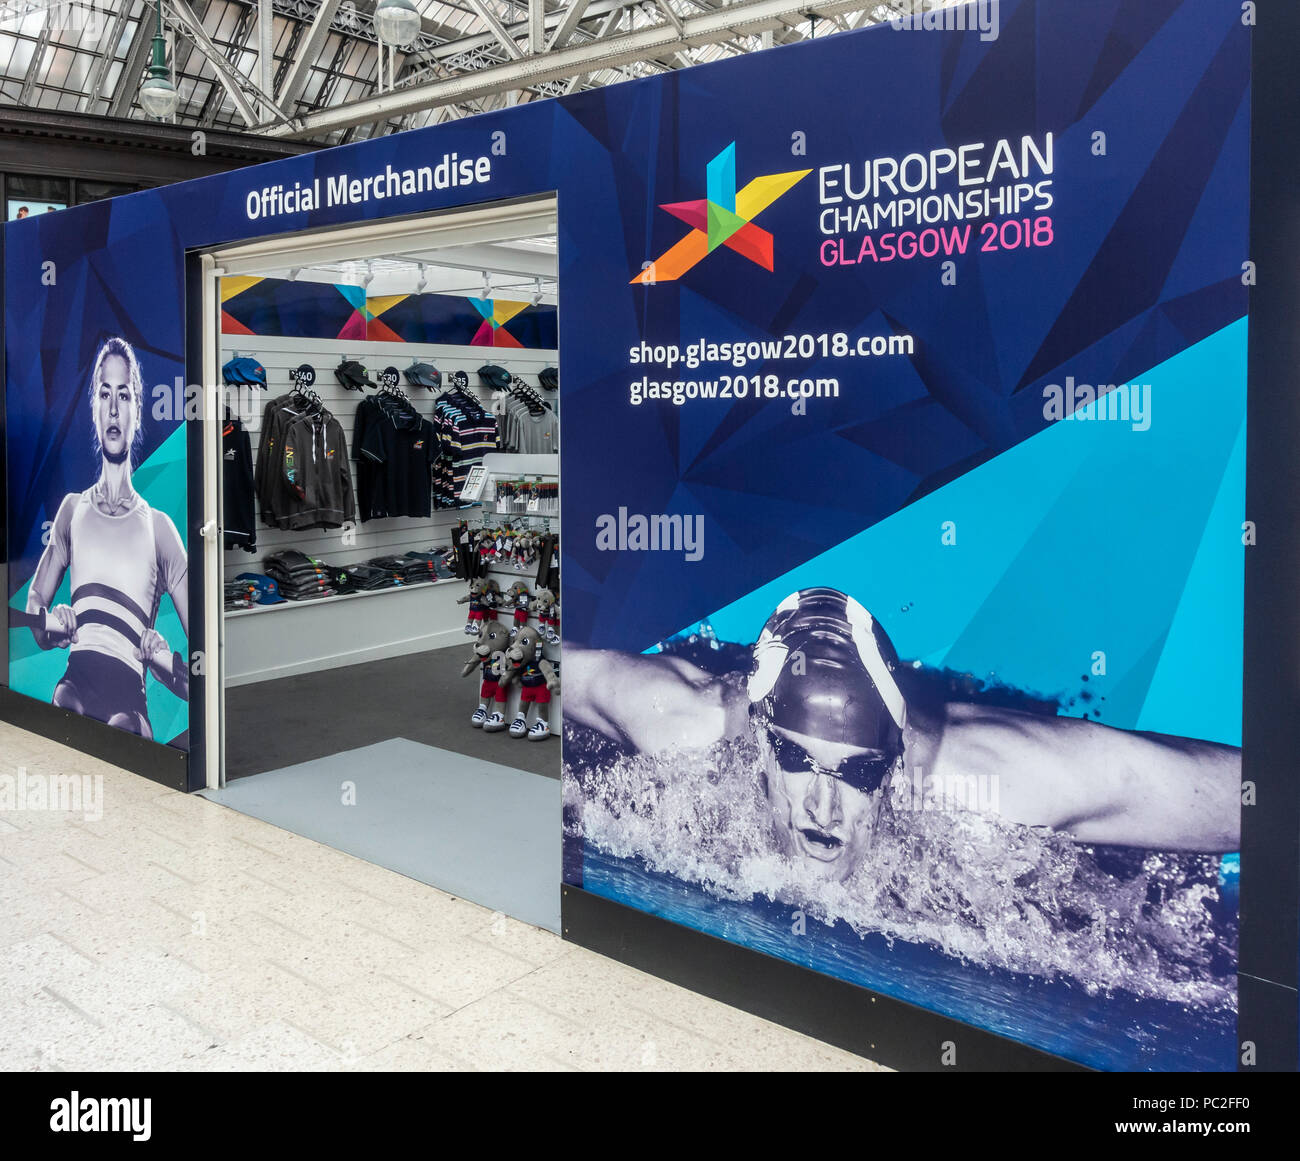 Pop-up official merchandise shop for Glasgow 2018, European Championships in the concourse of Glasgow Central Station - Stock Image